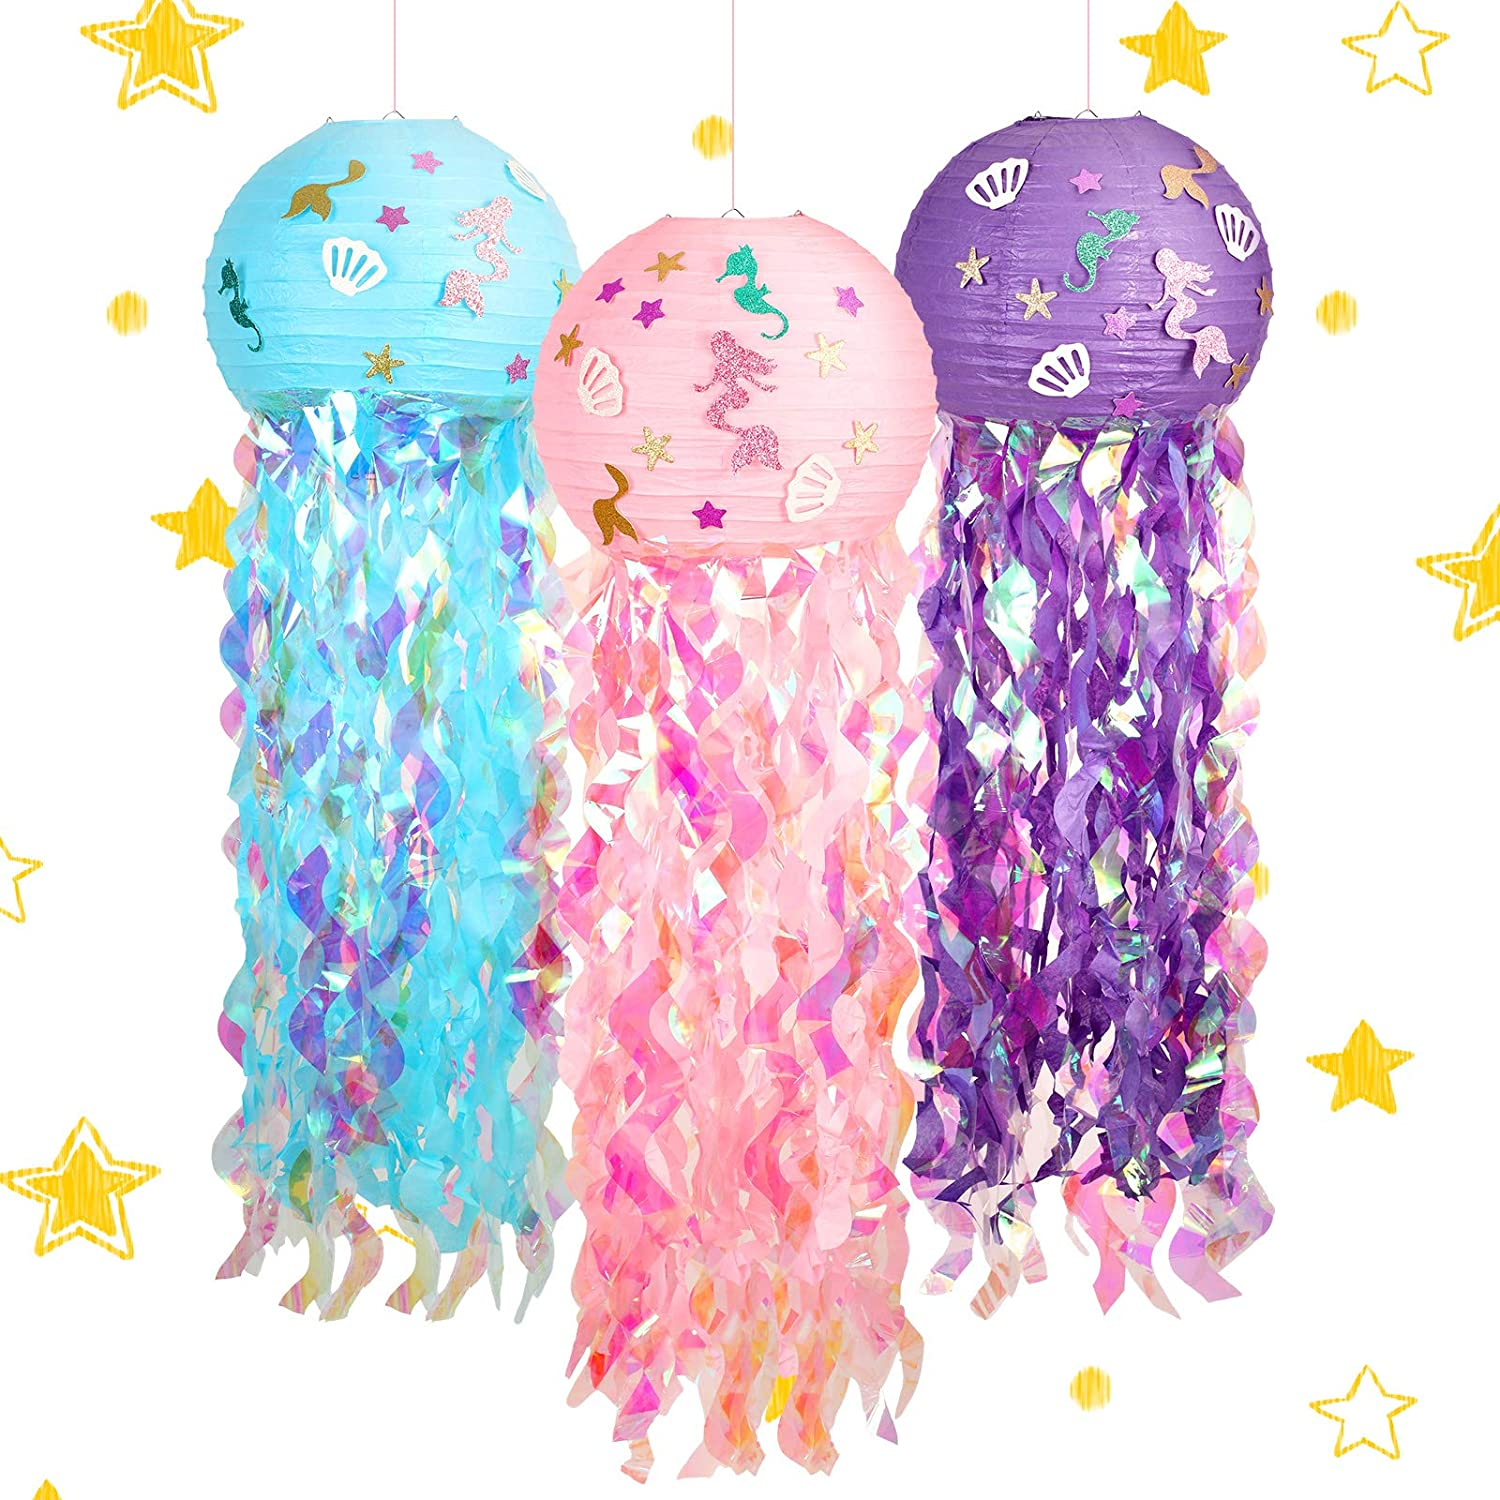 3 Pieces Mermaid Paper Lanterns Mermaid Glitter Hanging Jellyfish Paper Lanterns Mermaid Themed Party Decorations for Child Birthday Indoor and Outdoor Undersea Event Party (Purple, Pink, Blue)